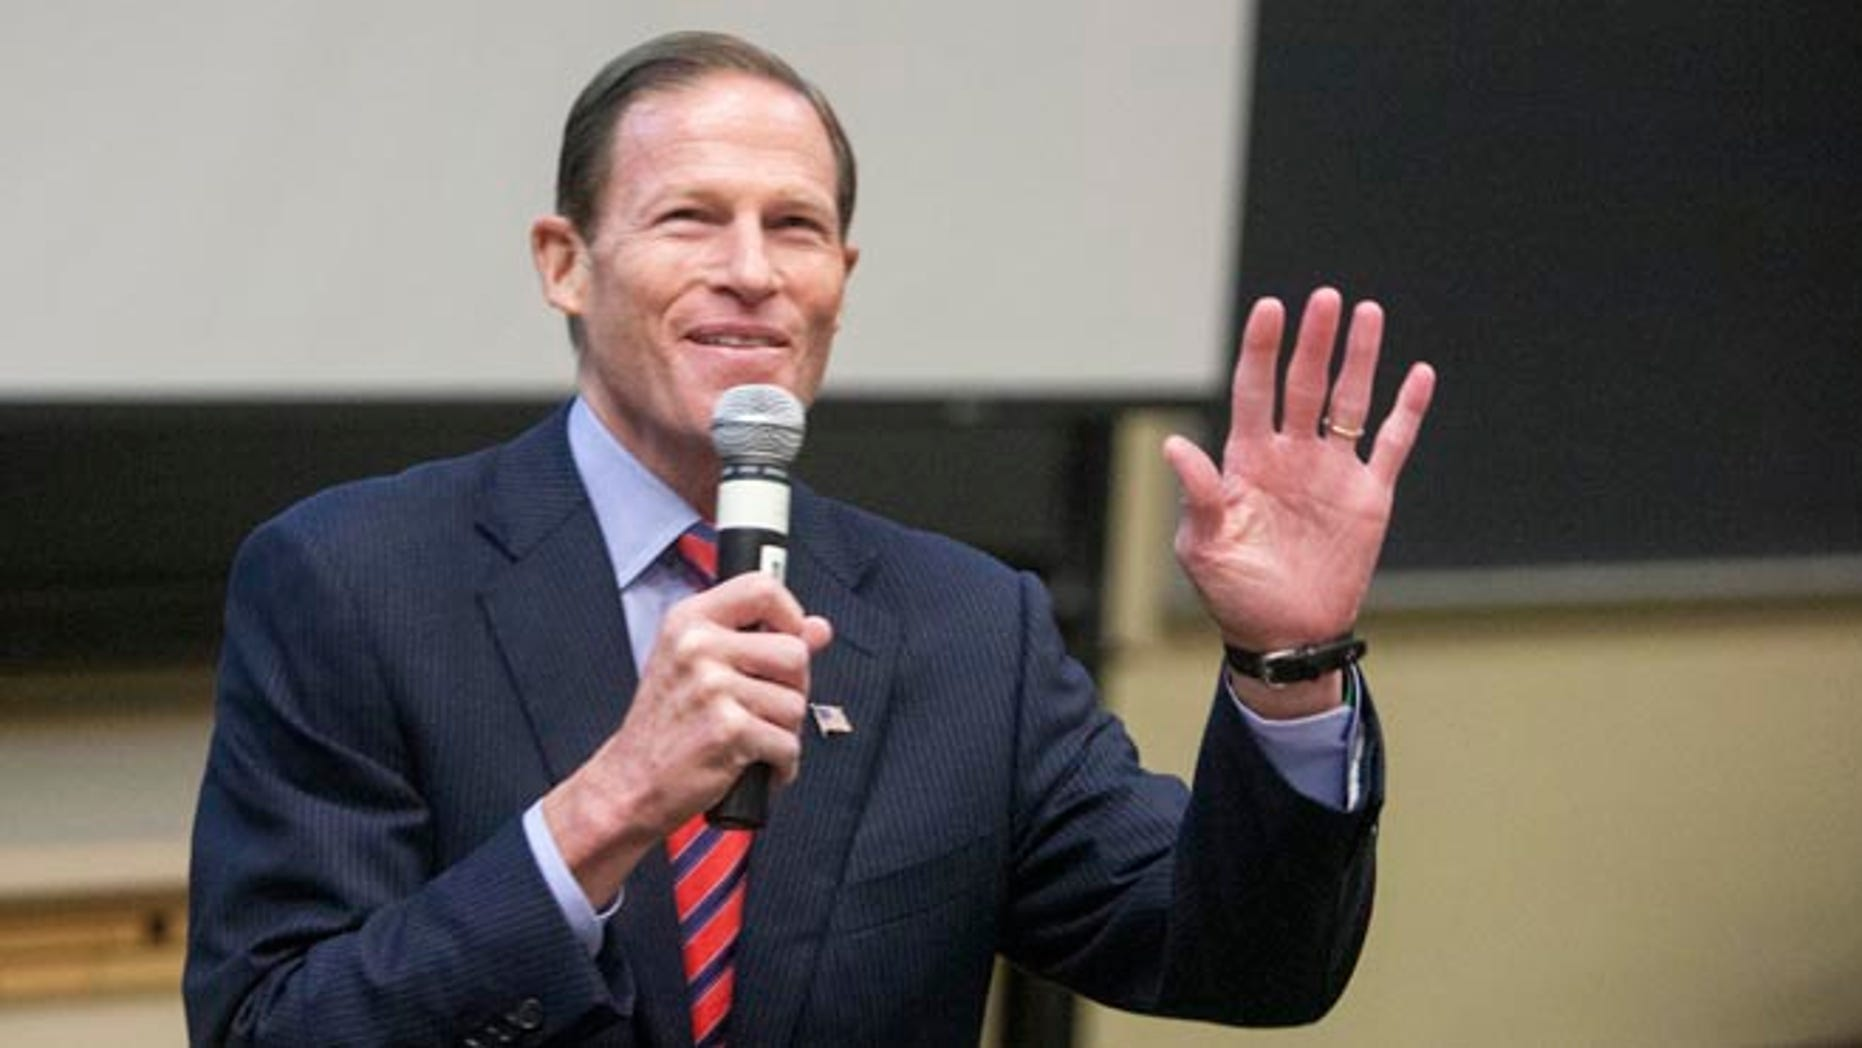 U.S. Senator Richard Blumenthal addresses the Marching On conference on gun violence prevention in Middletown, Connecticut September 28, 2013.   REUTERS/Michelle McLoughlin    (UNITED STATES - Tags: SOCIETY POLITICS) - RTR3FDZD